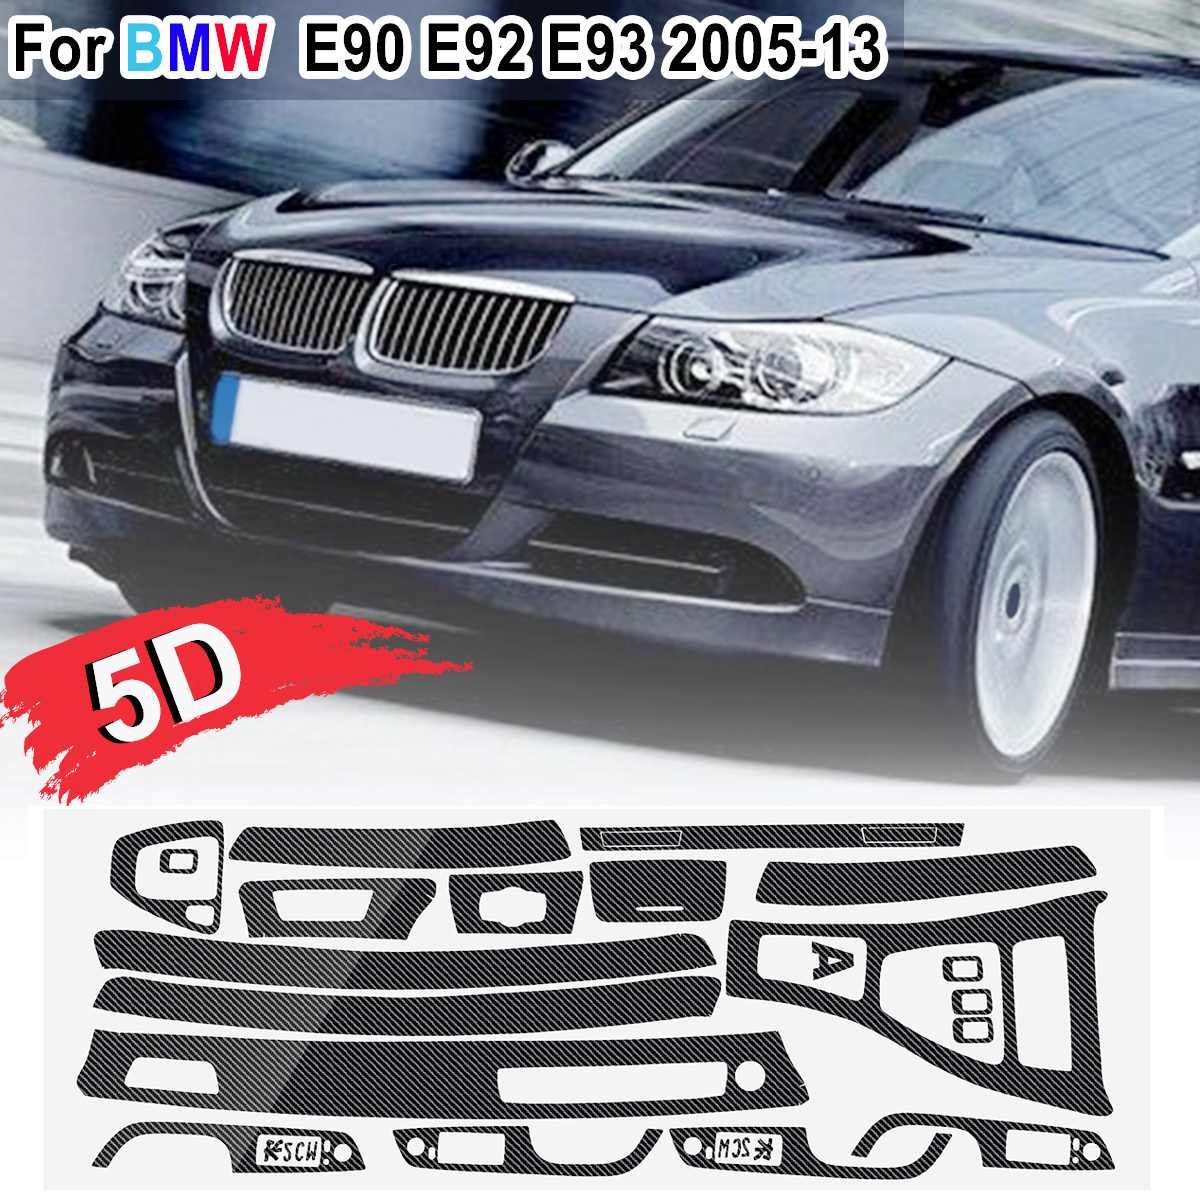 Image 2 - 15pcs Only RHD 5D Glossy/ 3D Matte Carbon Fiber Style Sticker Vinyl Decal Trim For BMW E90 E92 E93 2005 2013-in Car Stickers from Automobiles & Motorcycles